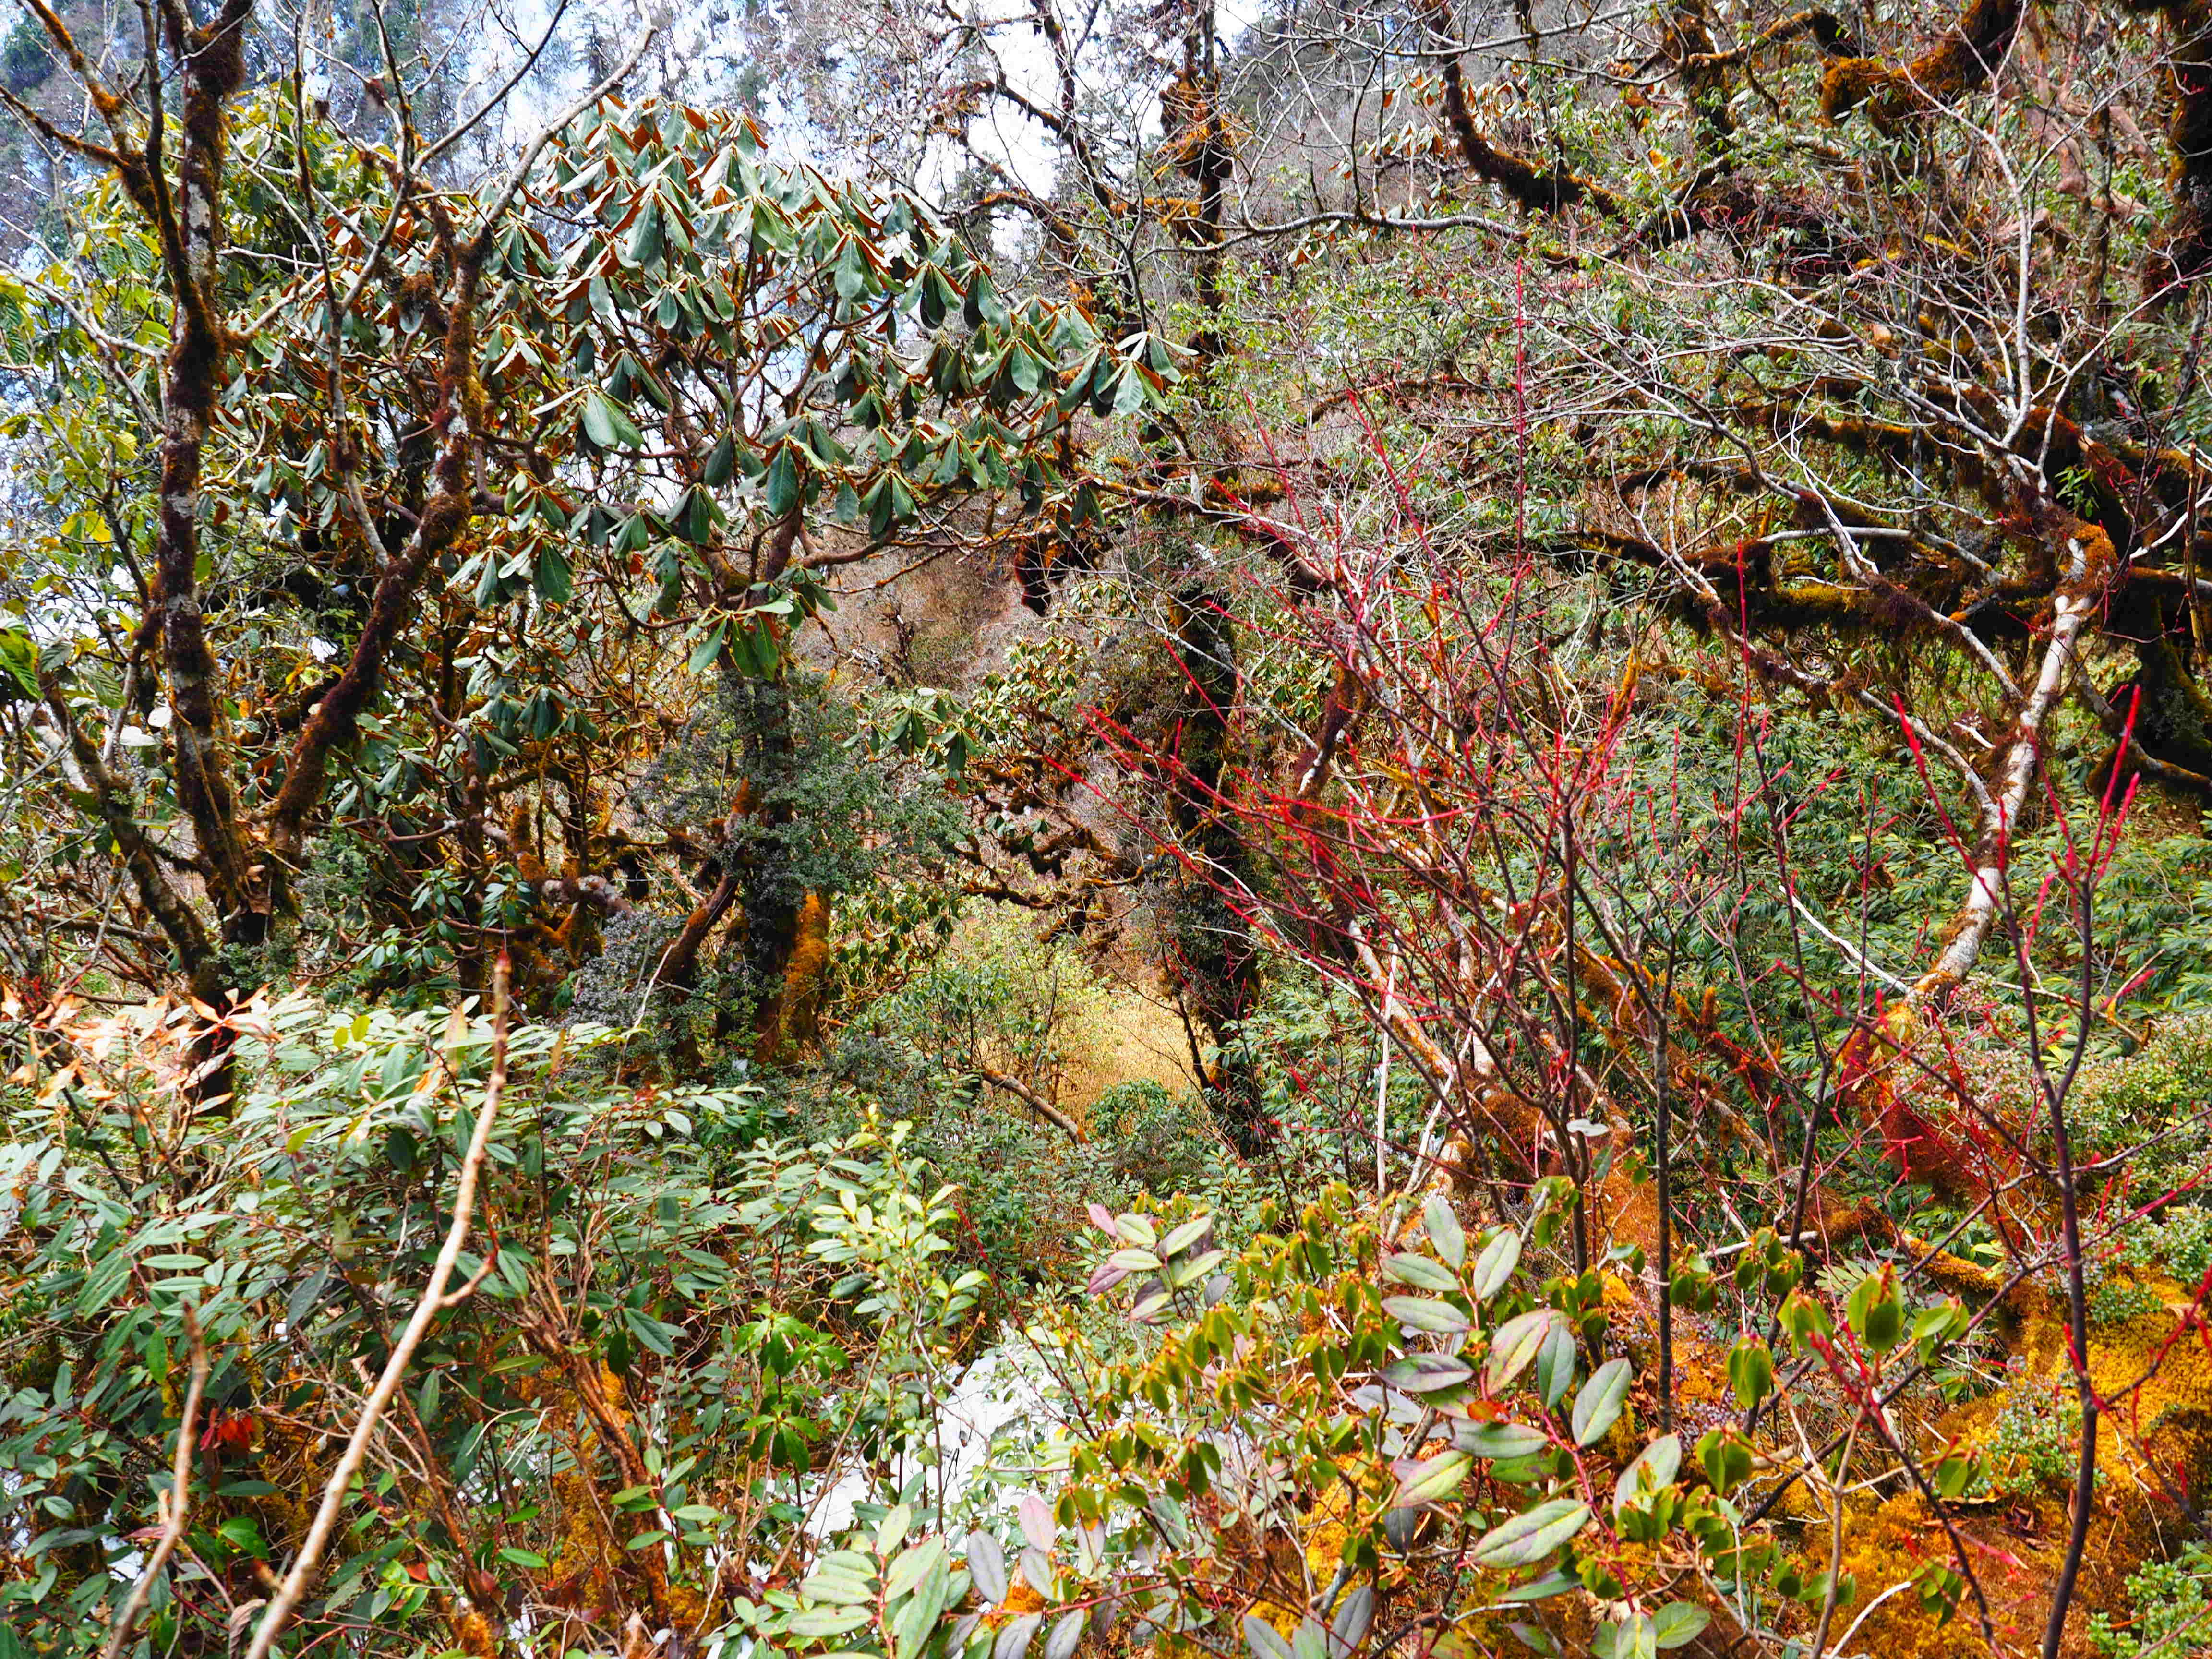 temperate rainforest at 3000 m asl in winter